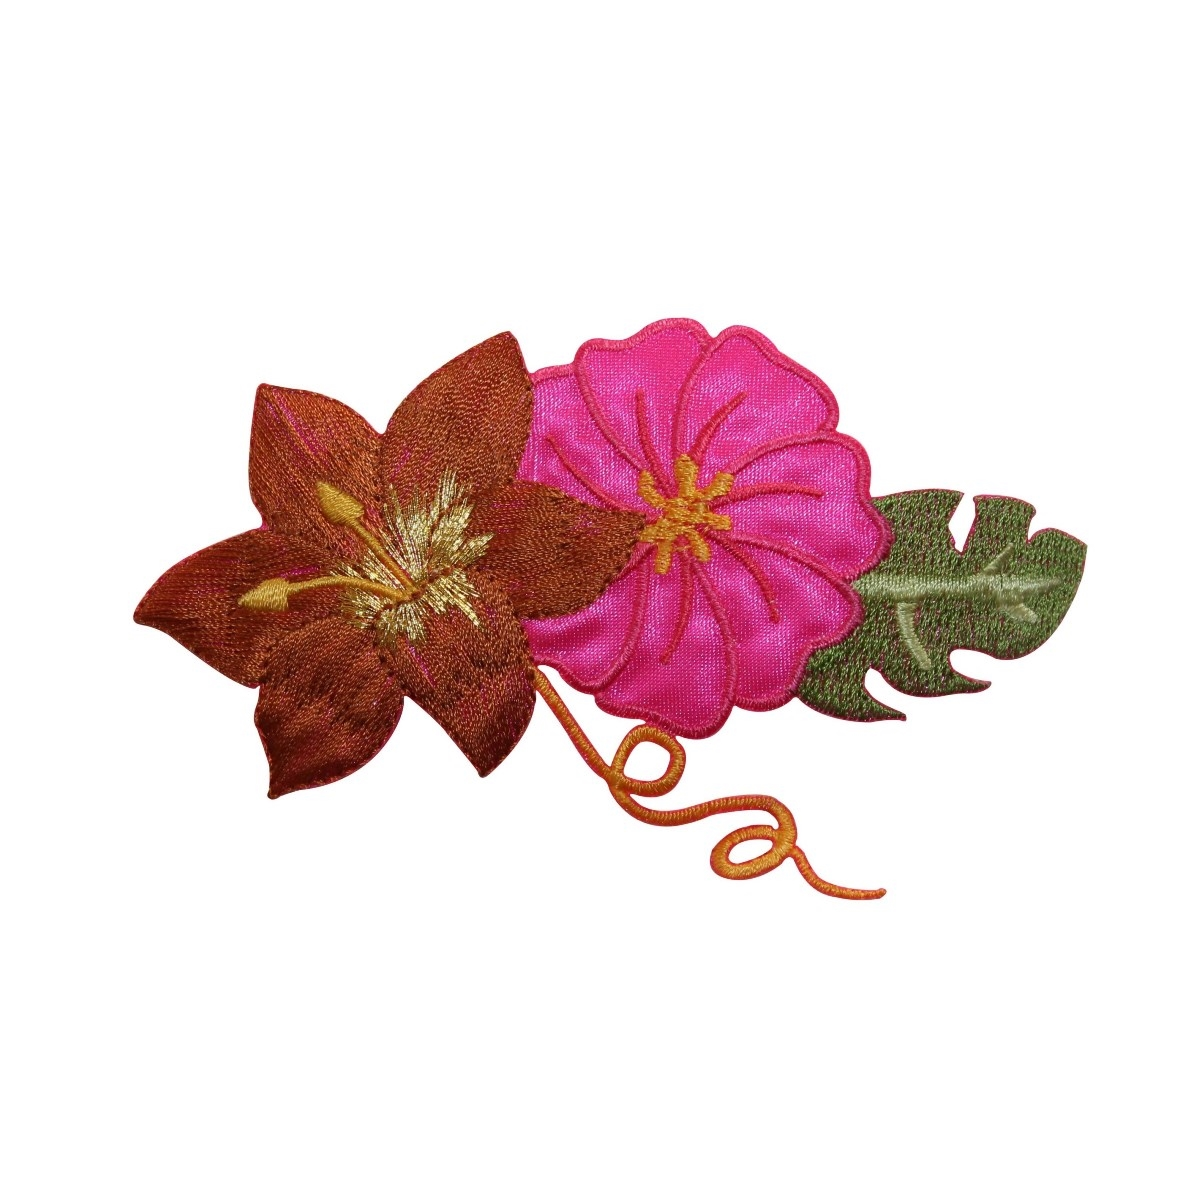 ID 6836 Tropical Flowers Patch Island Blossom Chain Embroidered Iron On Applique